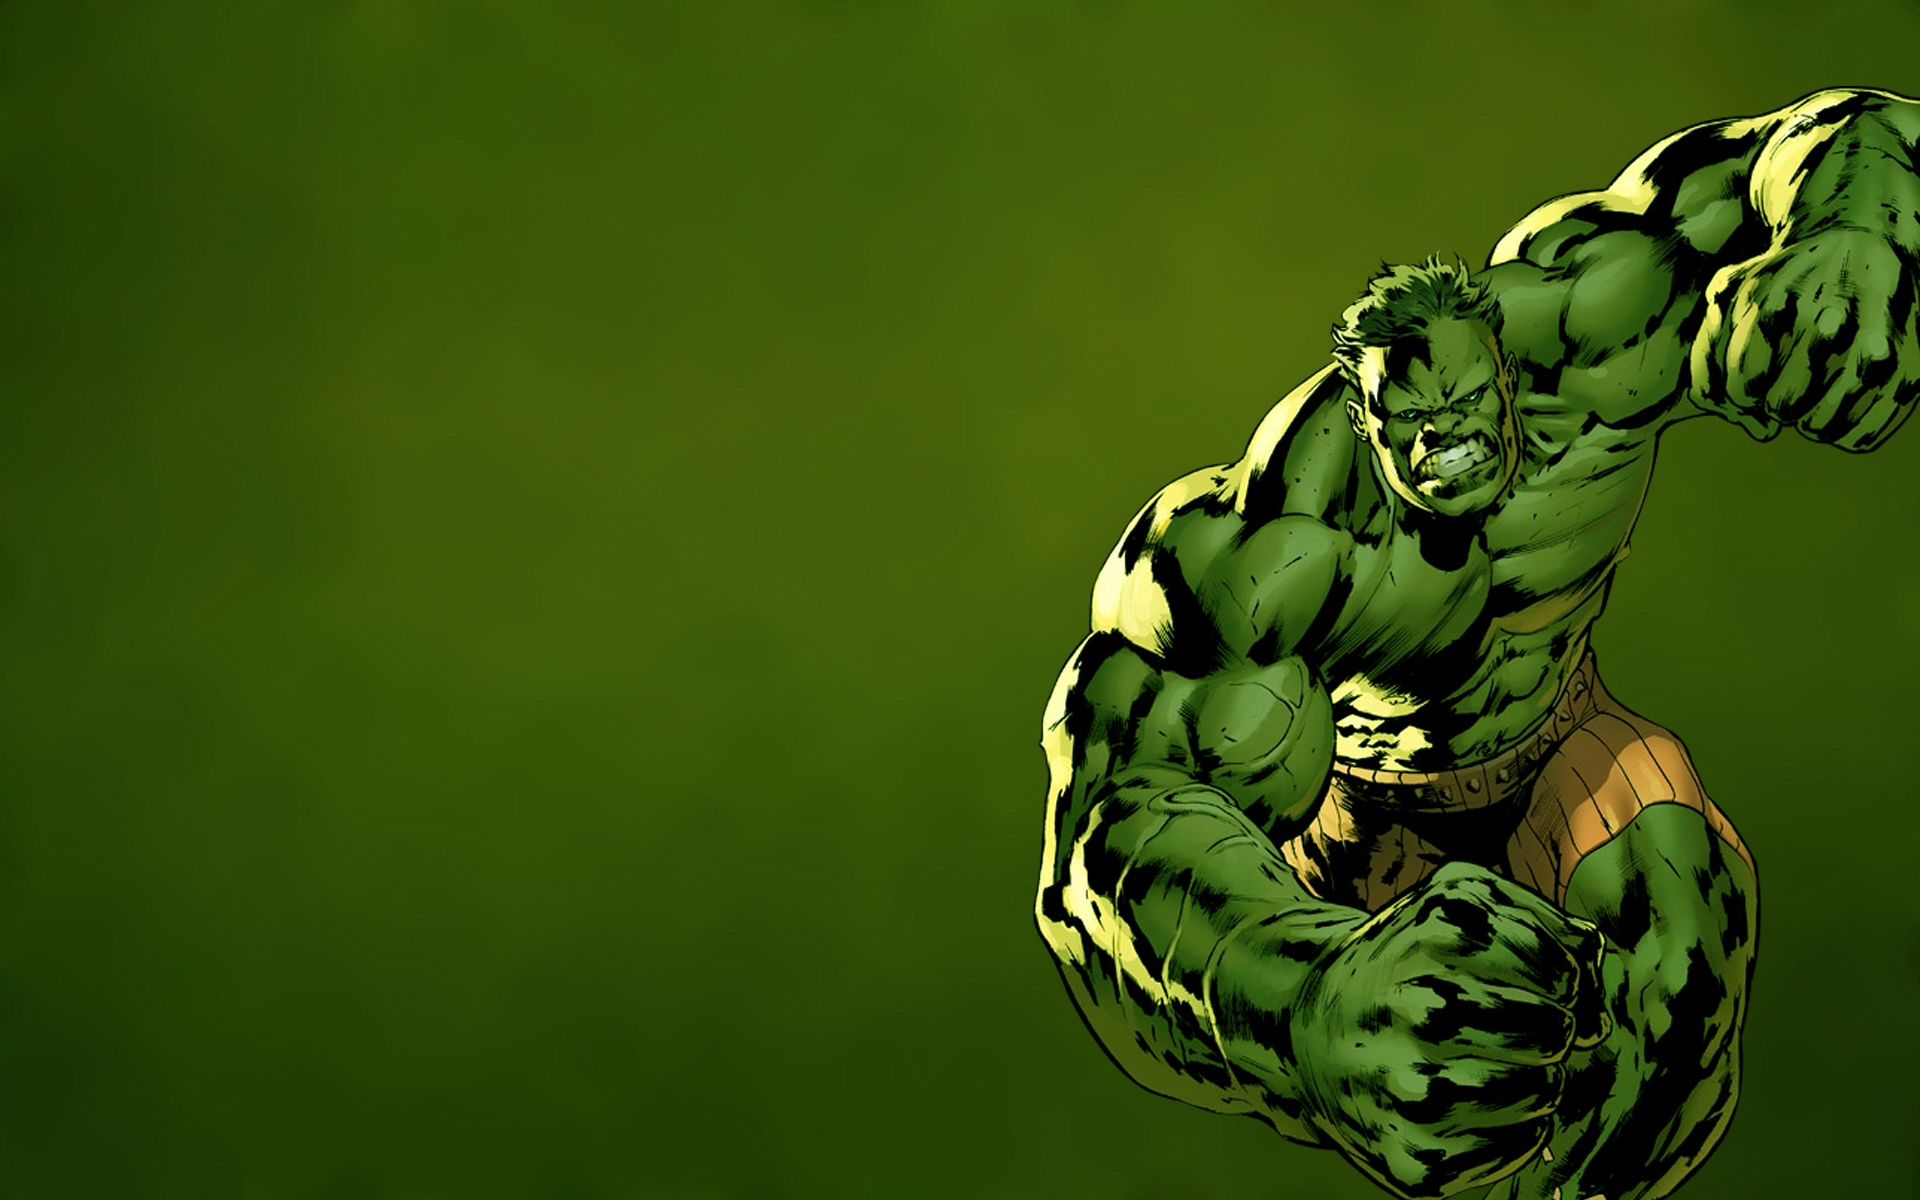 Incredible Hulk Wallpaper For Desktop on cartoon screensavers theme